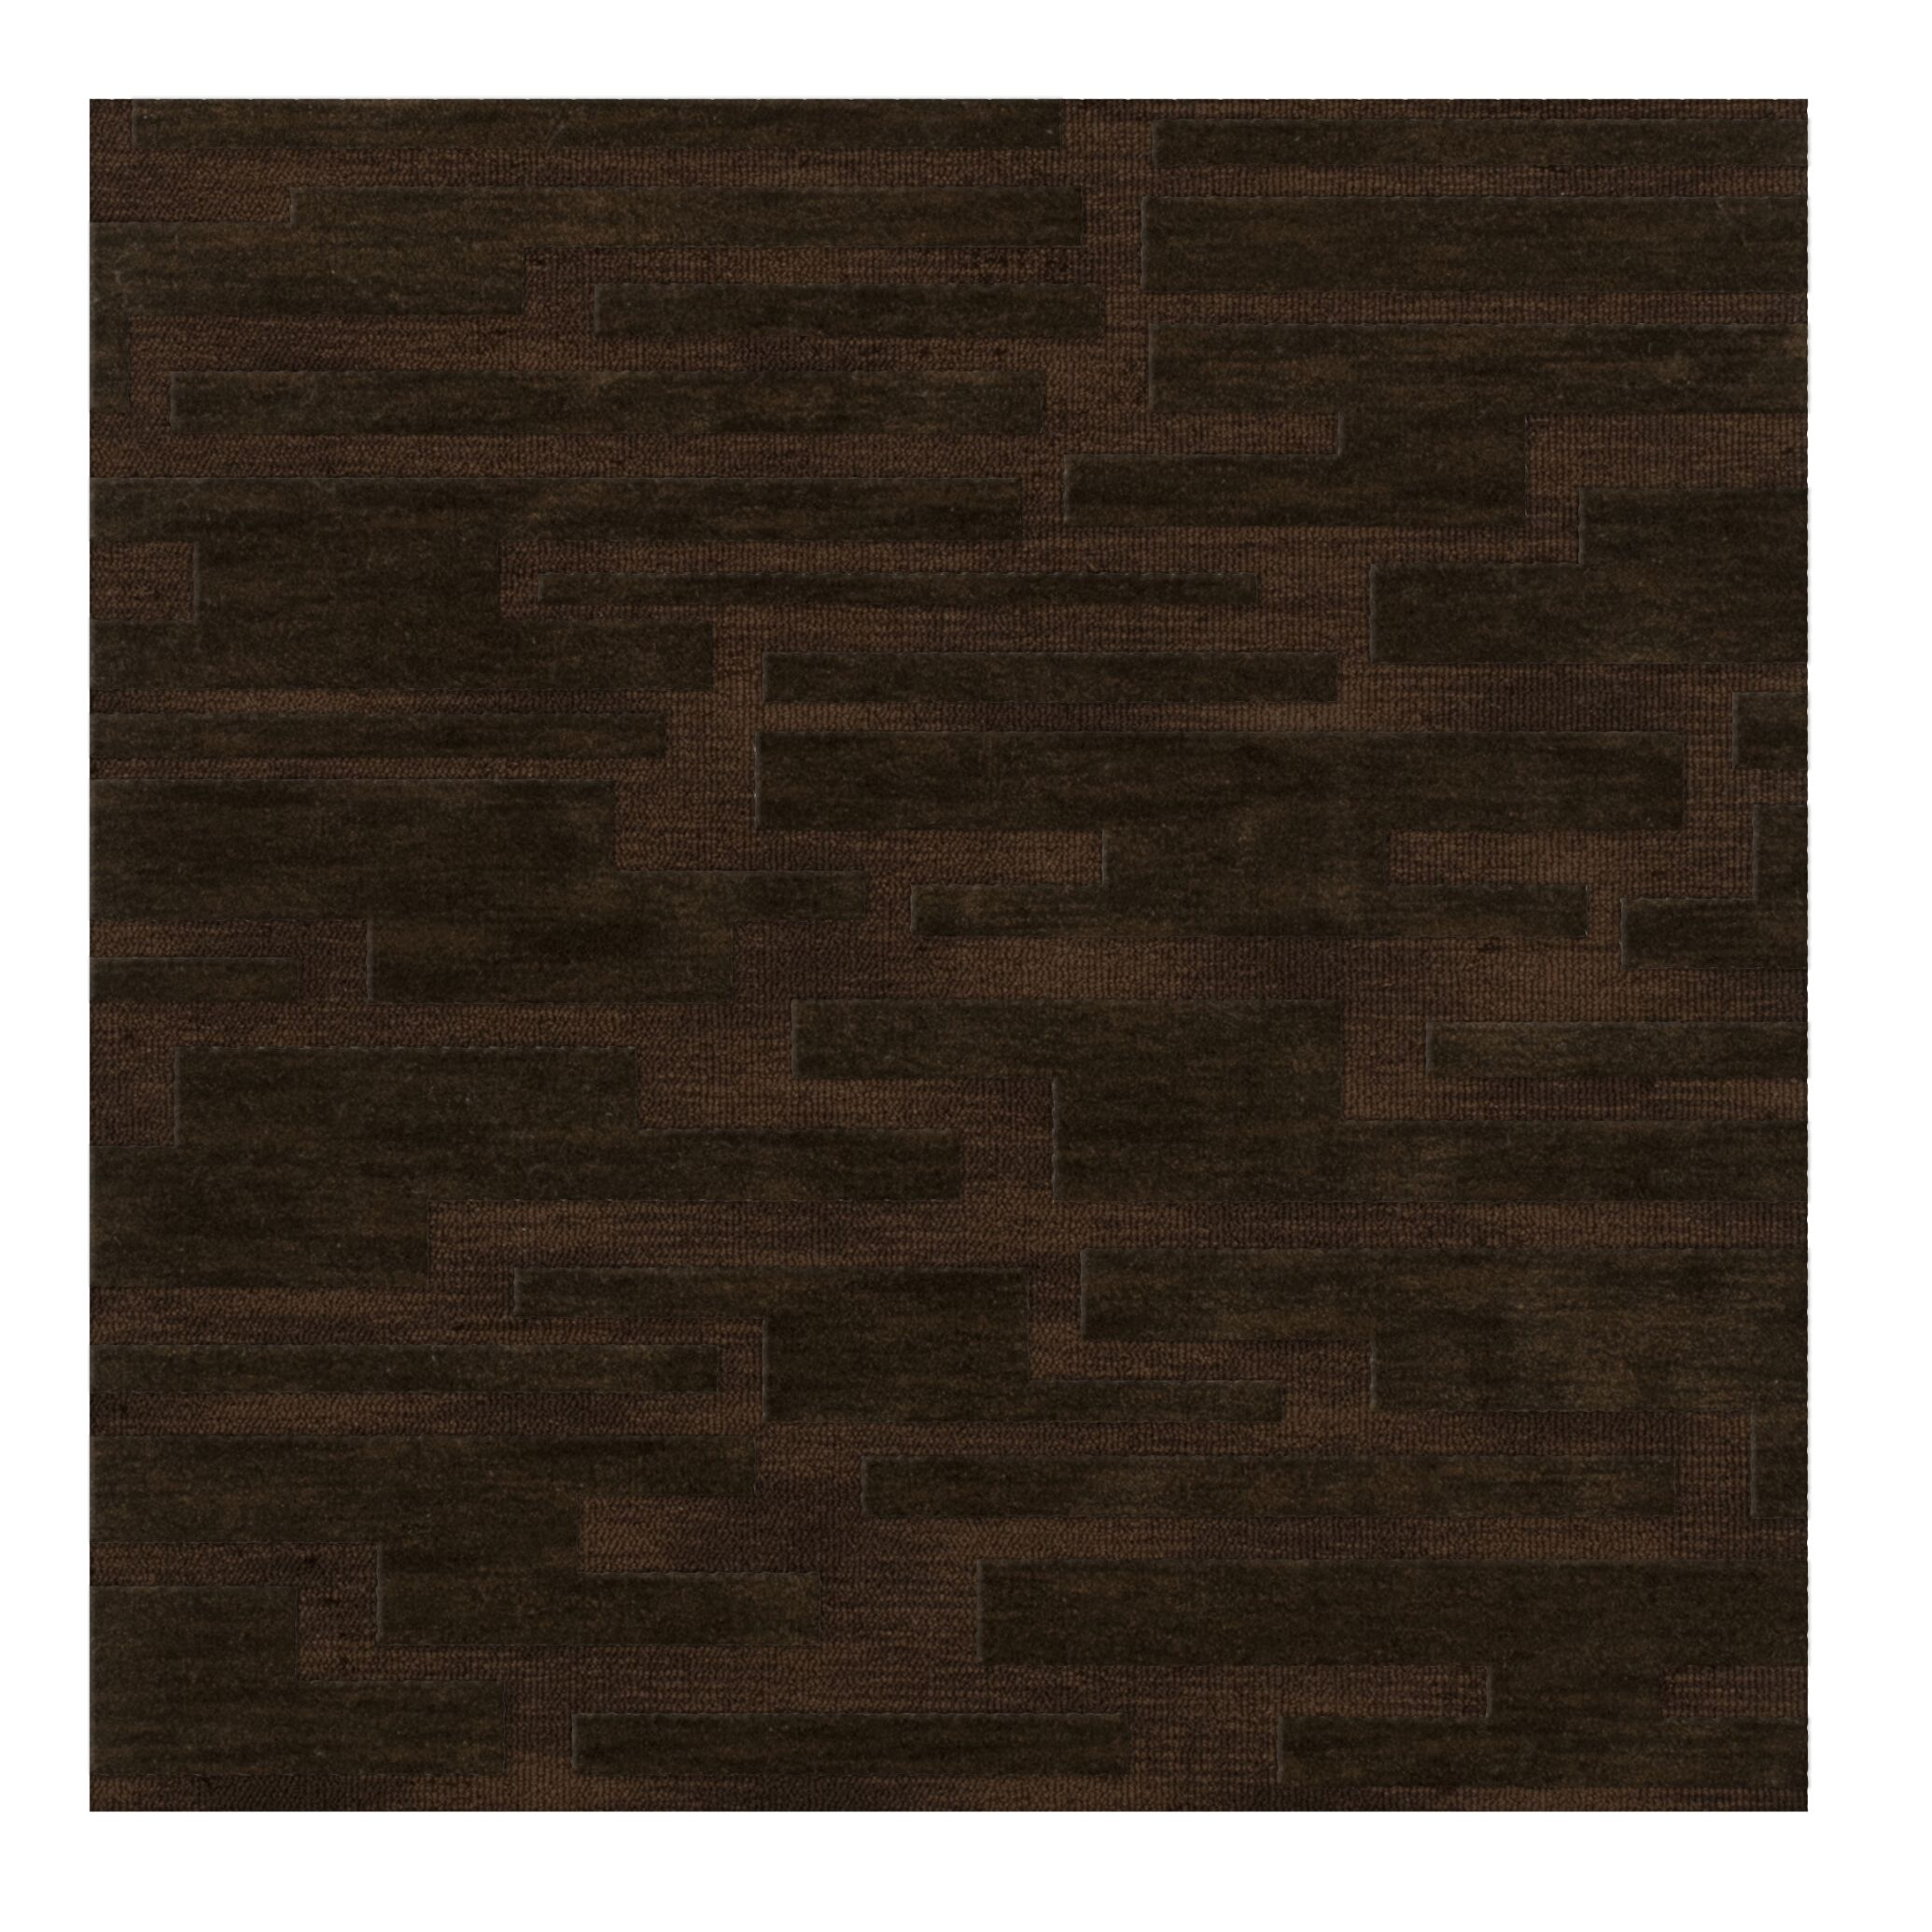 Dover Fudge Area Rug Rug Size: Square 12'